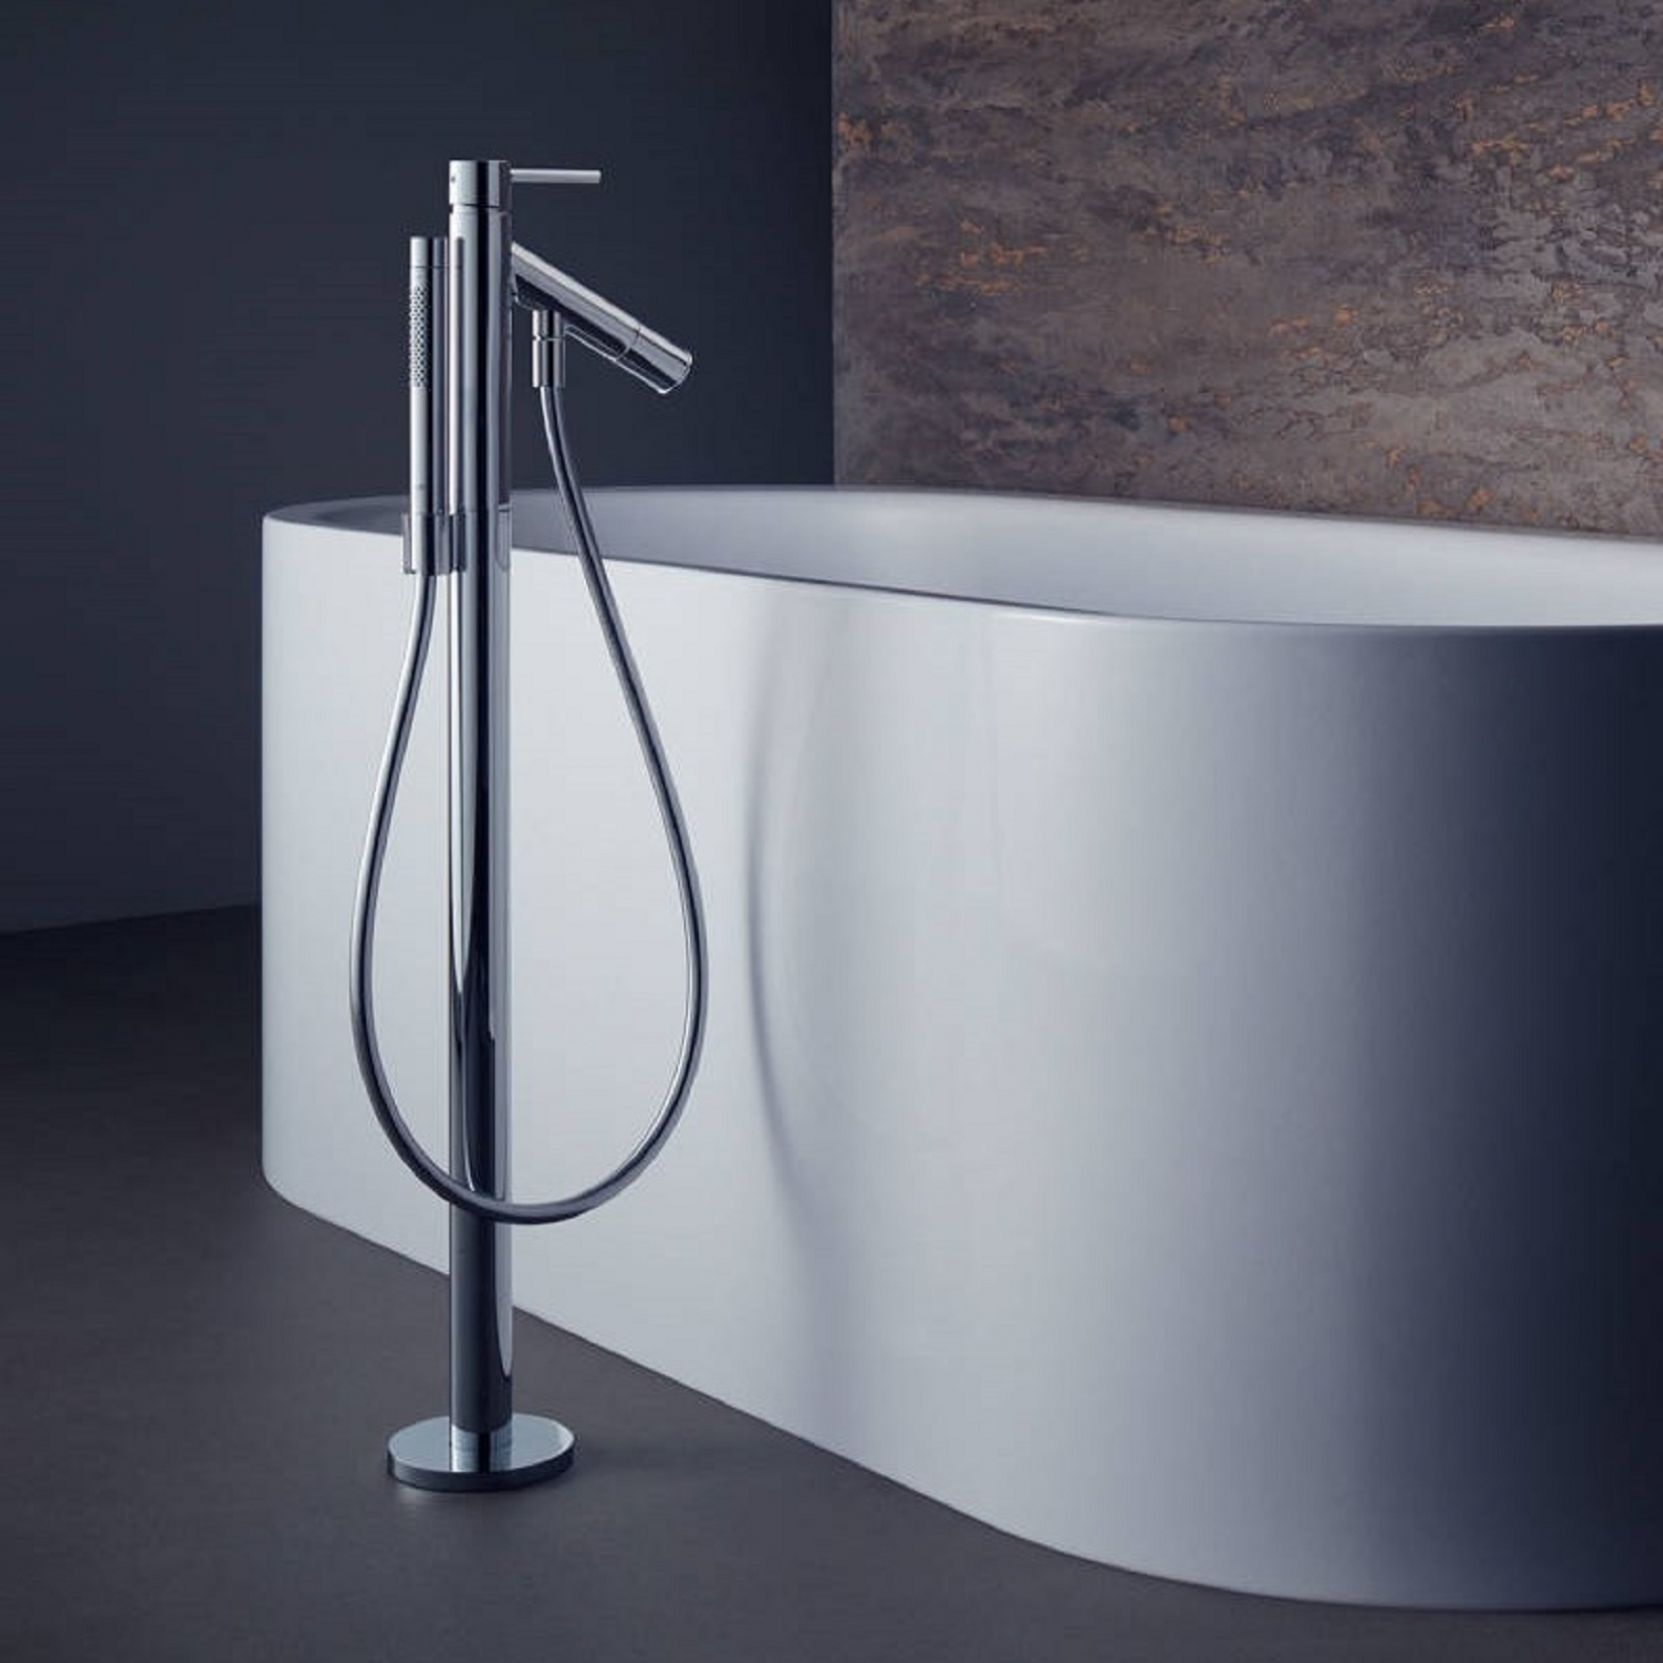 AXOR HANSGROHE STARCK SINGLE LEVER BATH MIXER FREESTANDING - TattaHome